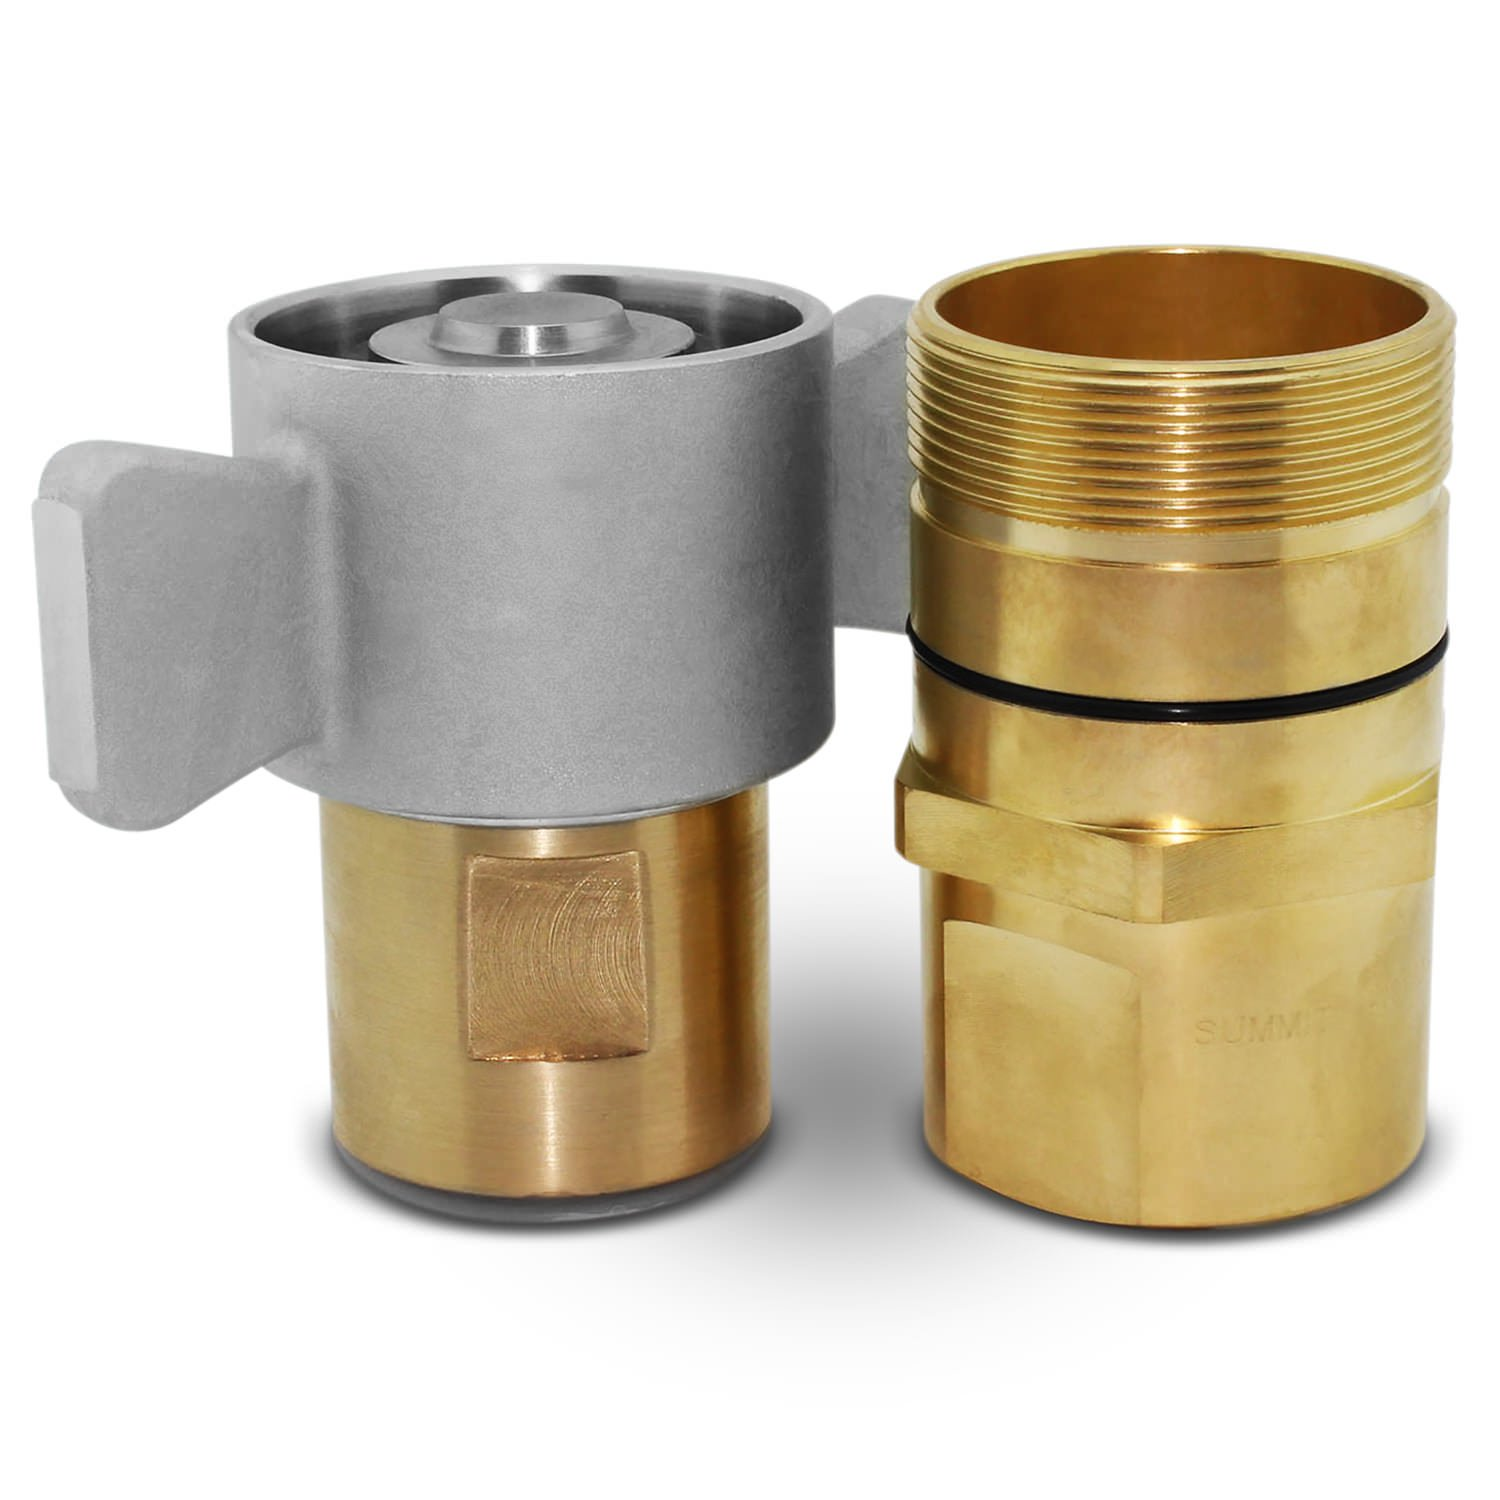 1-1/2'' NPT Wet-Line Wing Nut Hydraulic Quick Disconnect Coupler/Coupling Set